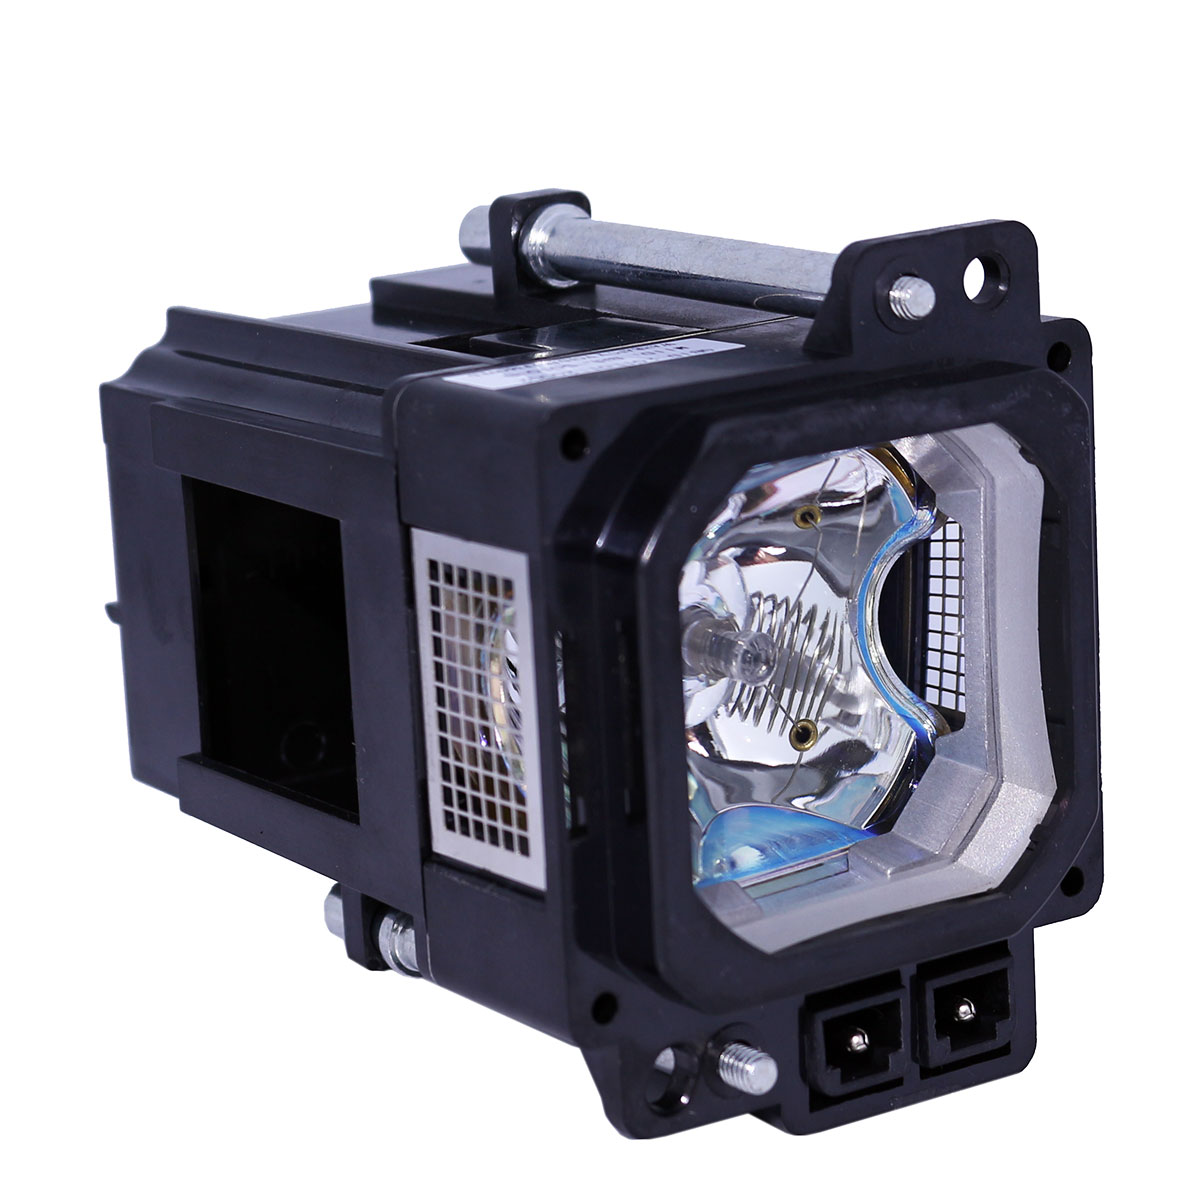 Compatible DLA-HD1 DLAHD1 Replacement Projection Lamp for JVC Projector